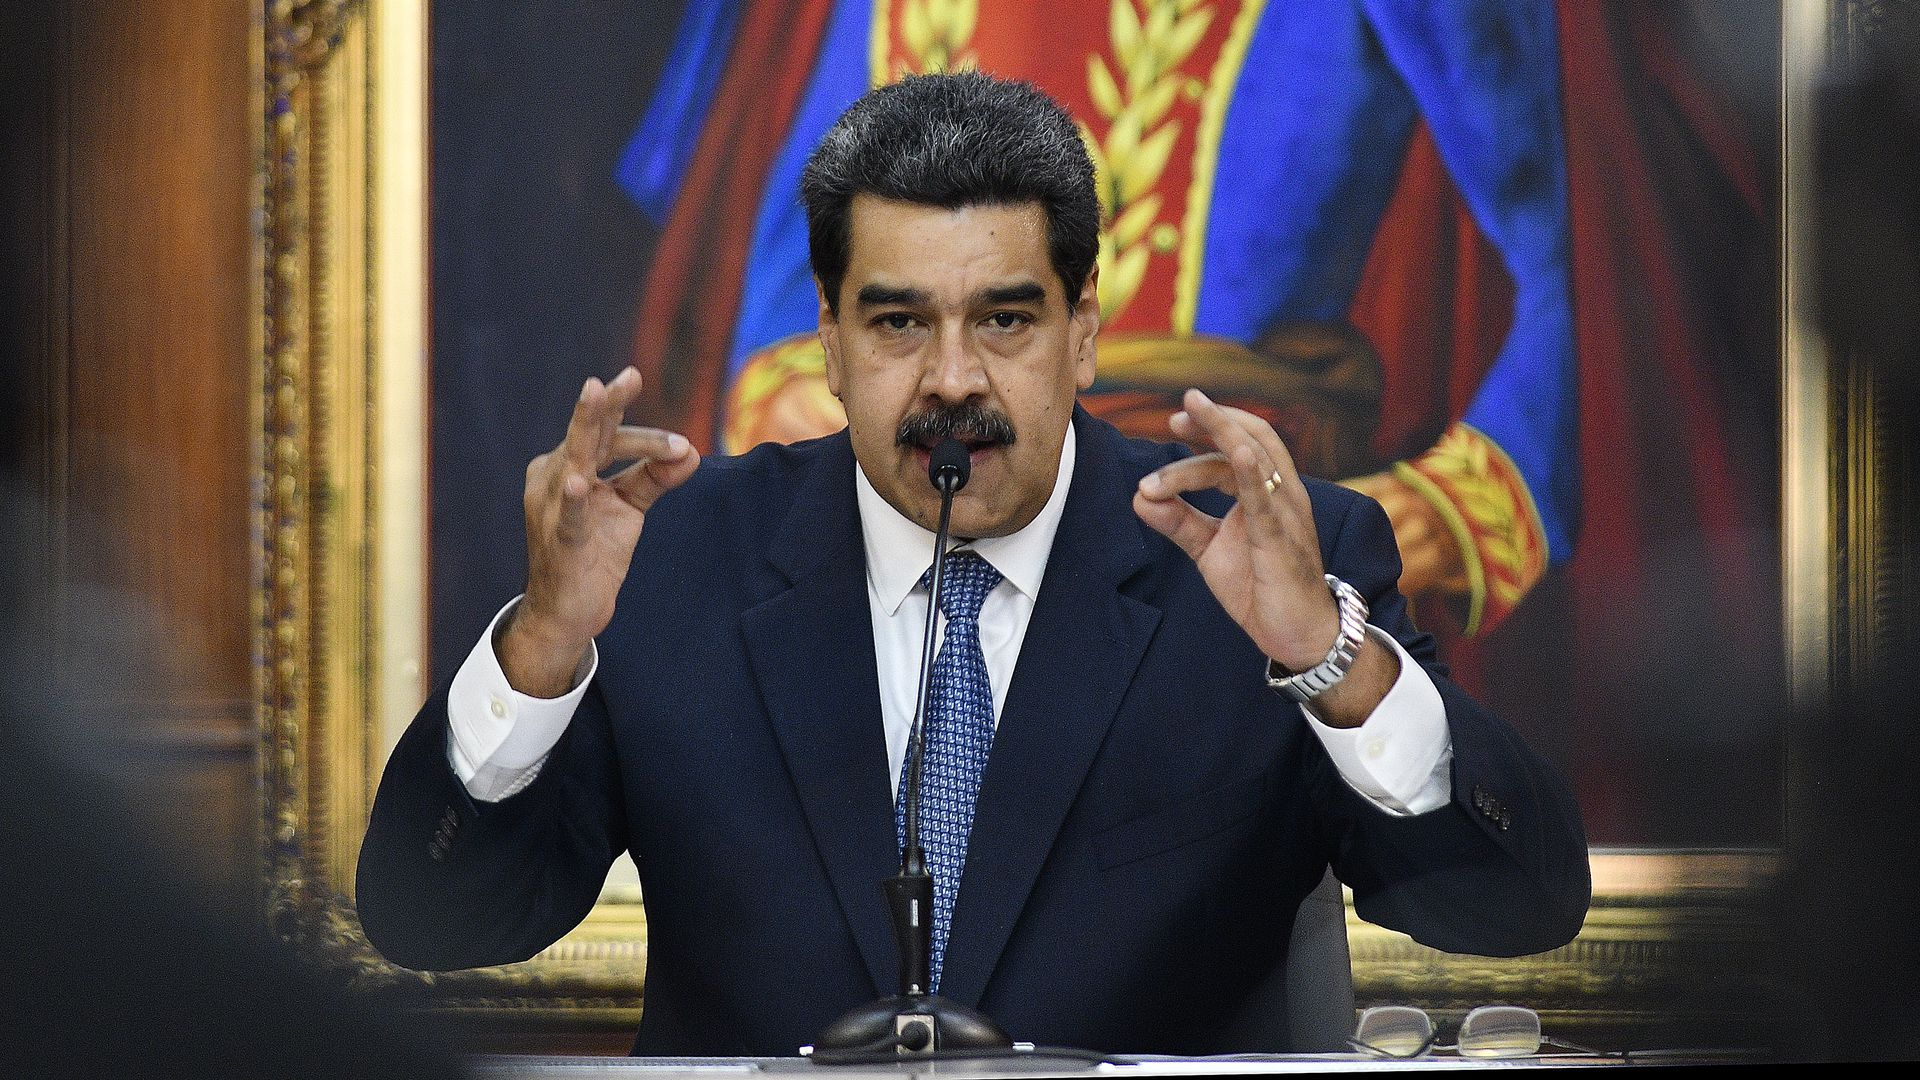 Nicolas Maduro speaking at a lectern